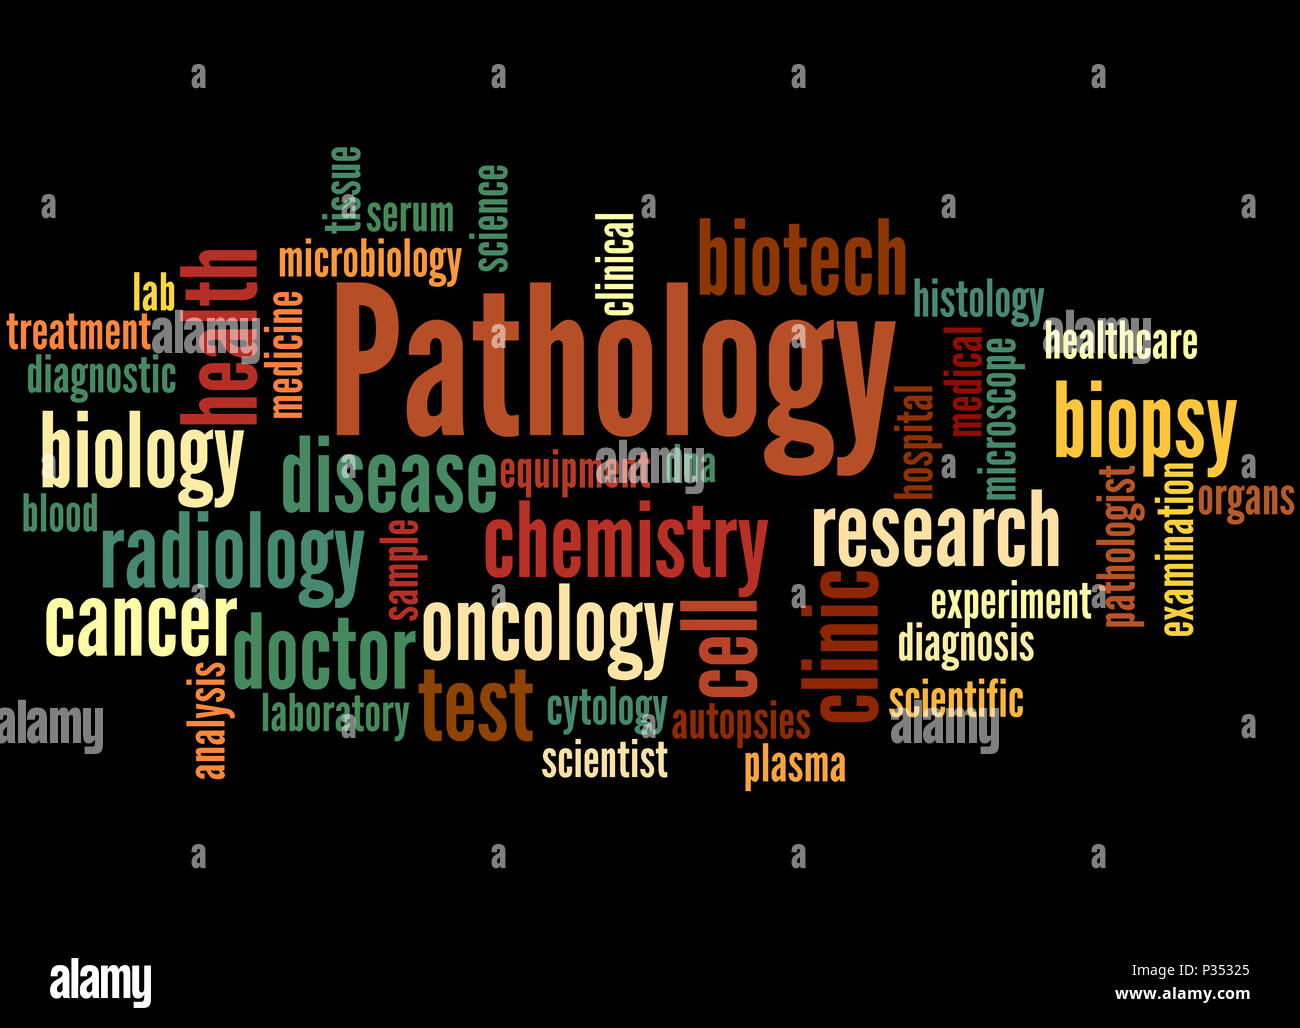 Pathology, word cloud concept on black background. Stock Photo